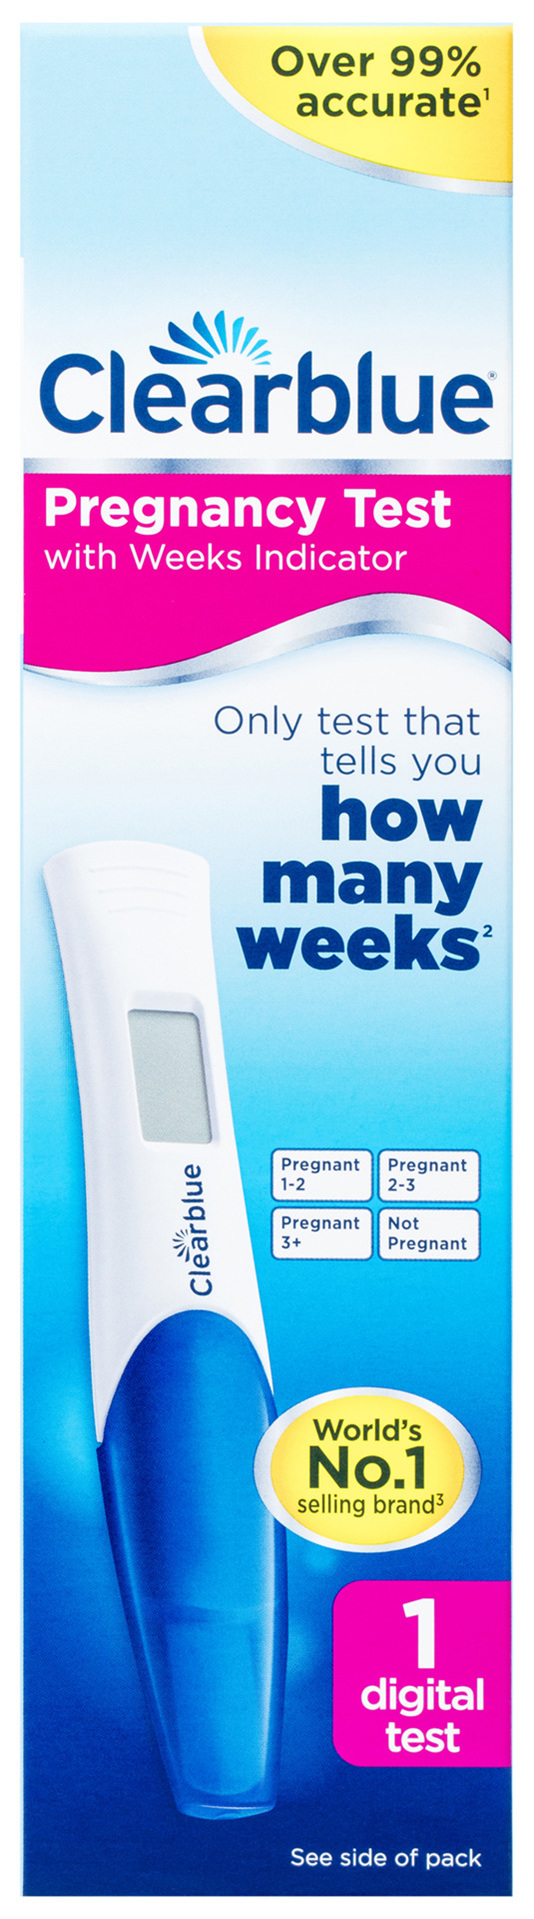 Clearblue Pregnancy Test with Weeks Indicator, Kit Of 1 digital Test